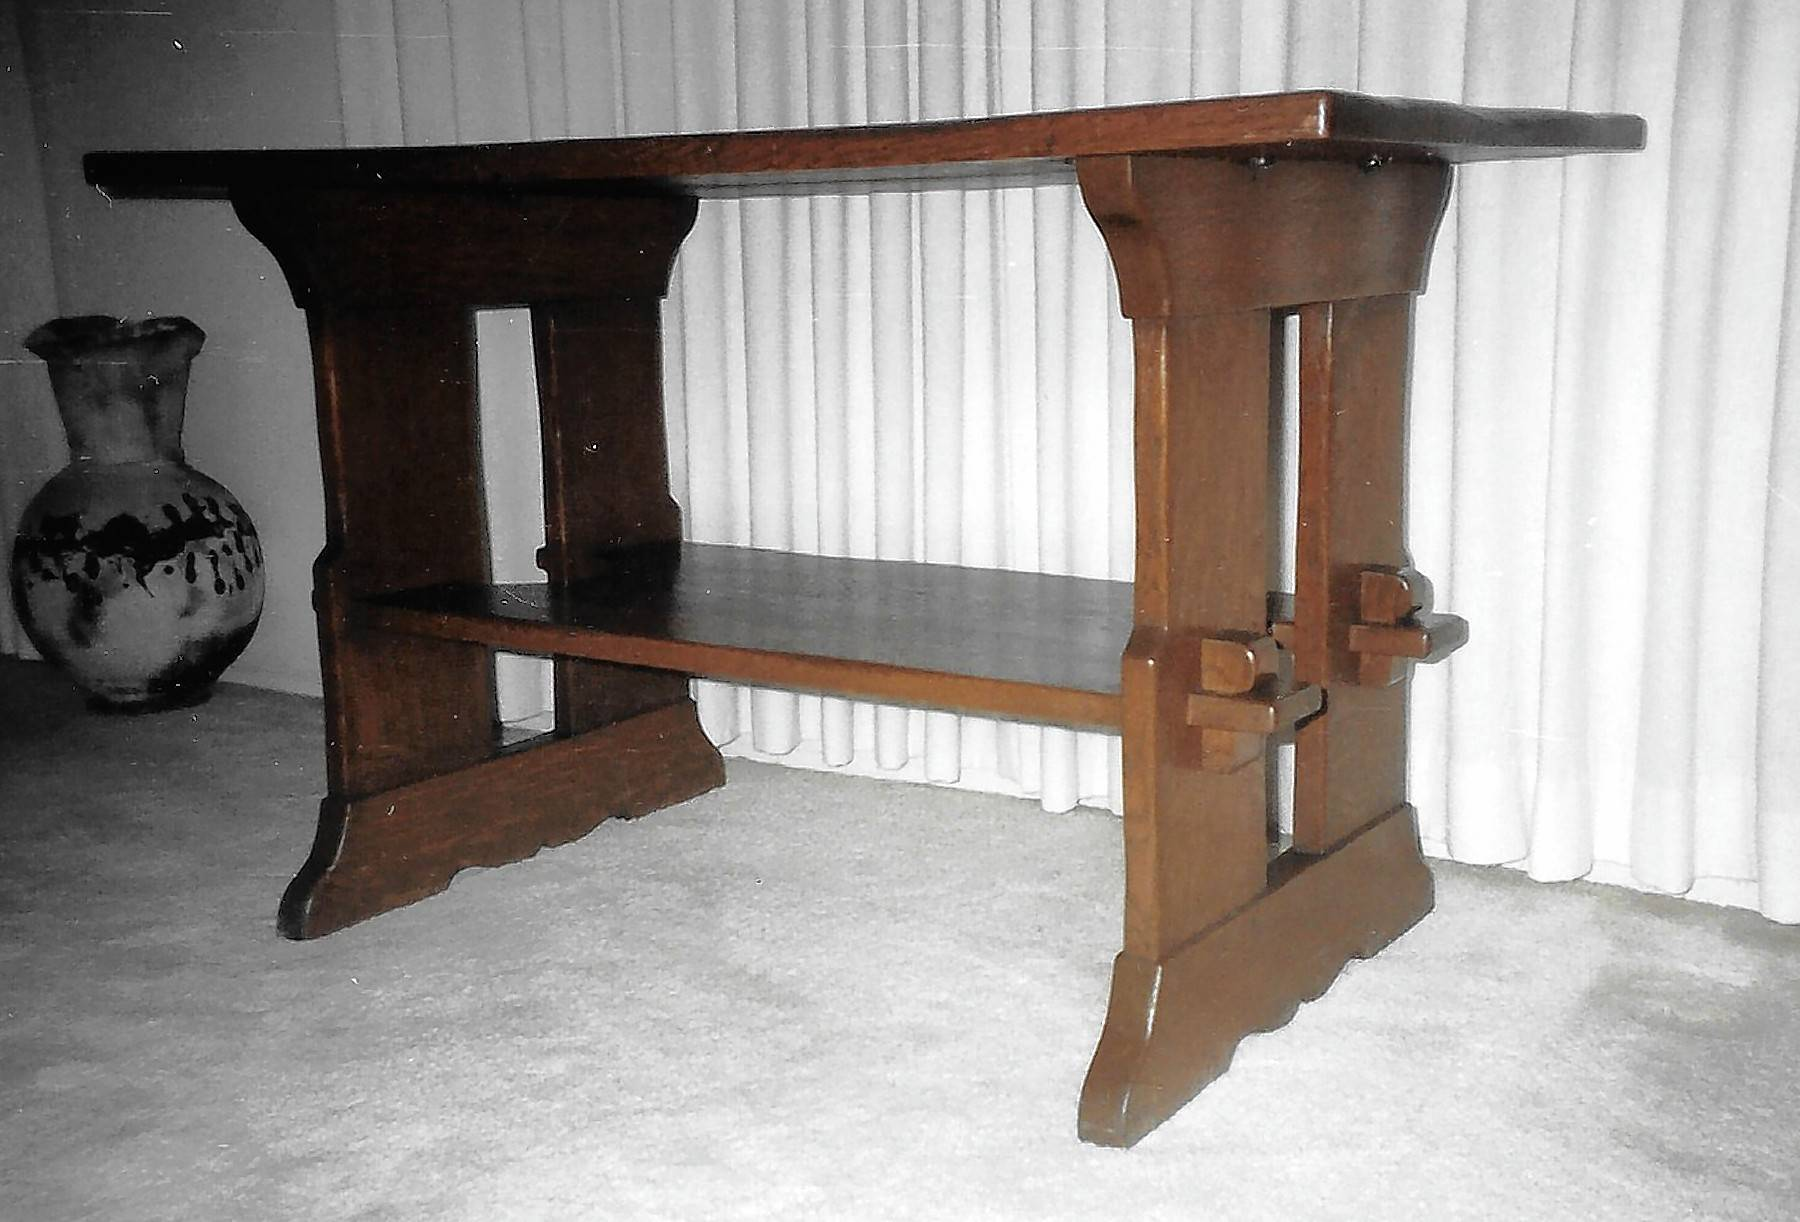 L U0026 J.G. Stickley Furniture Co. Was Founded In New York In 1902.